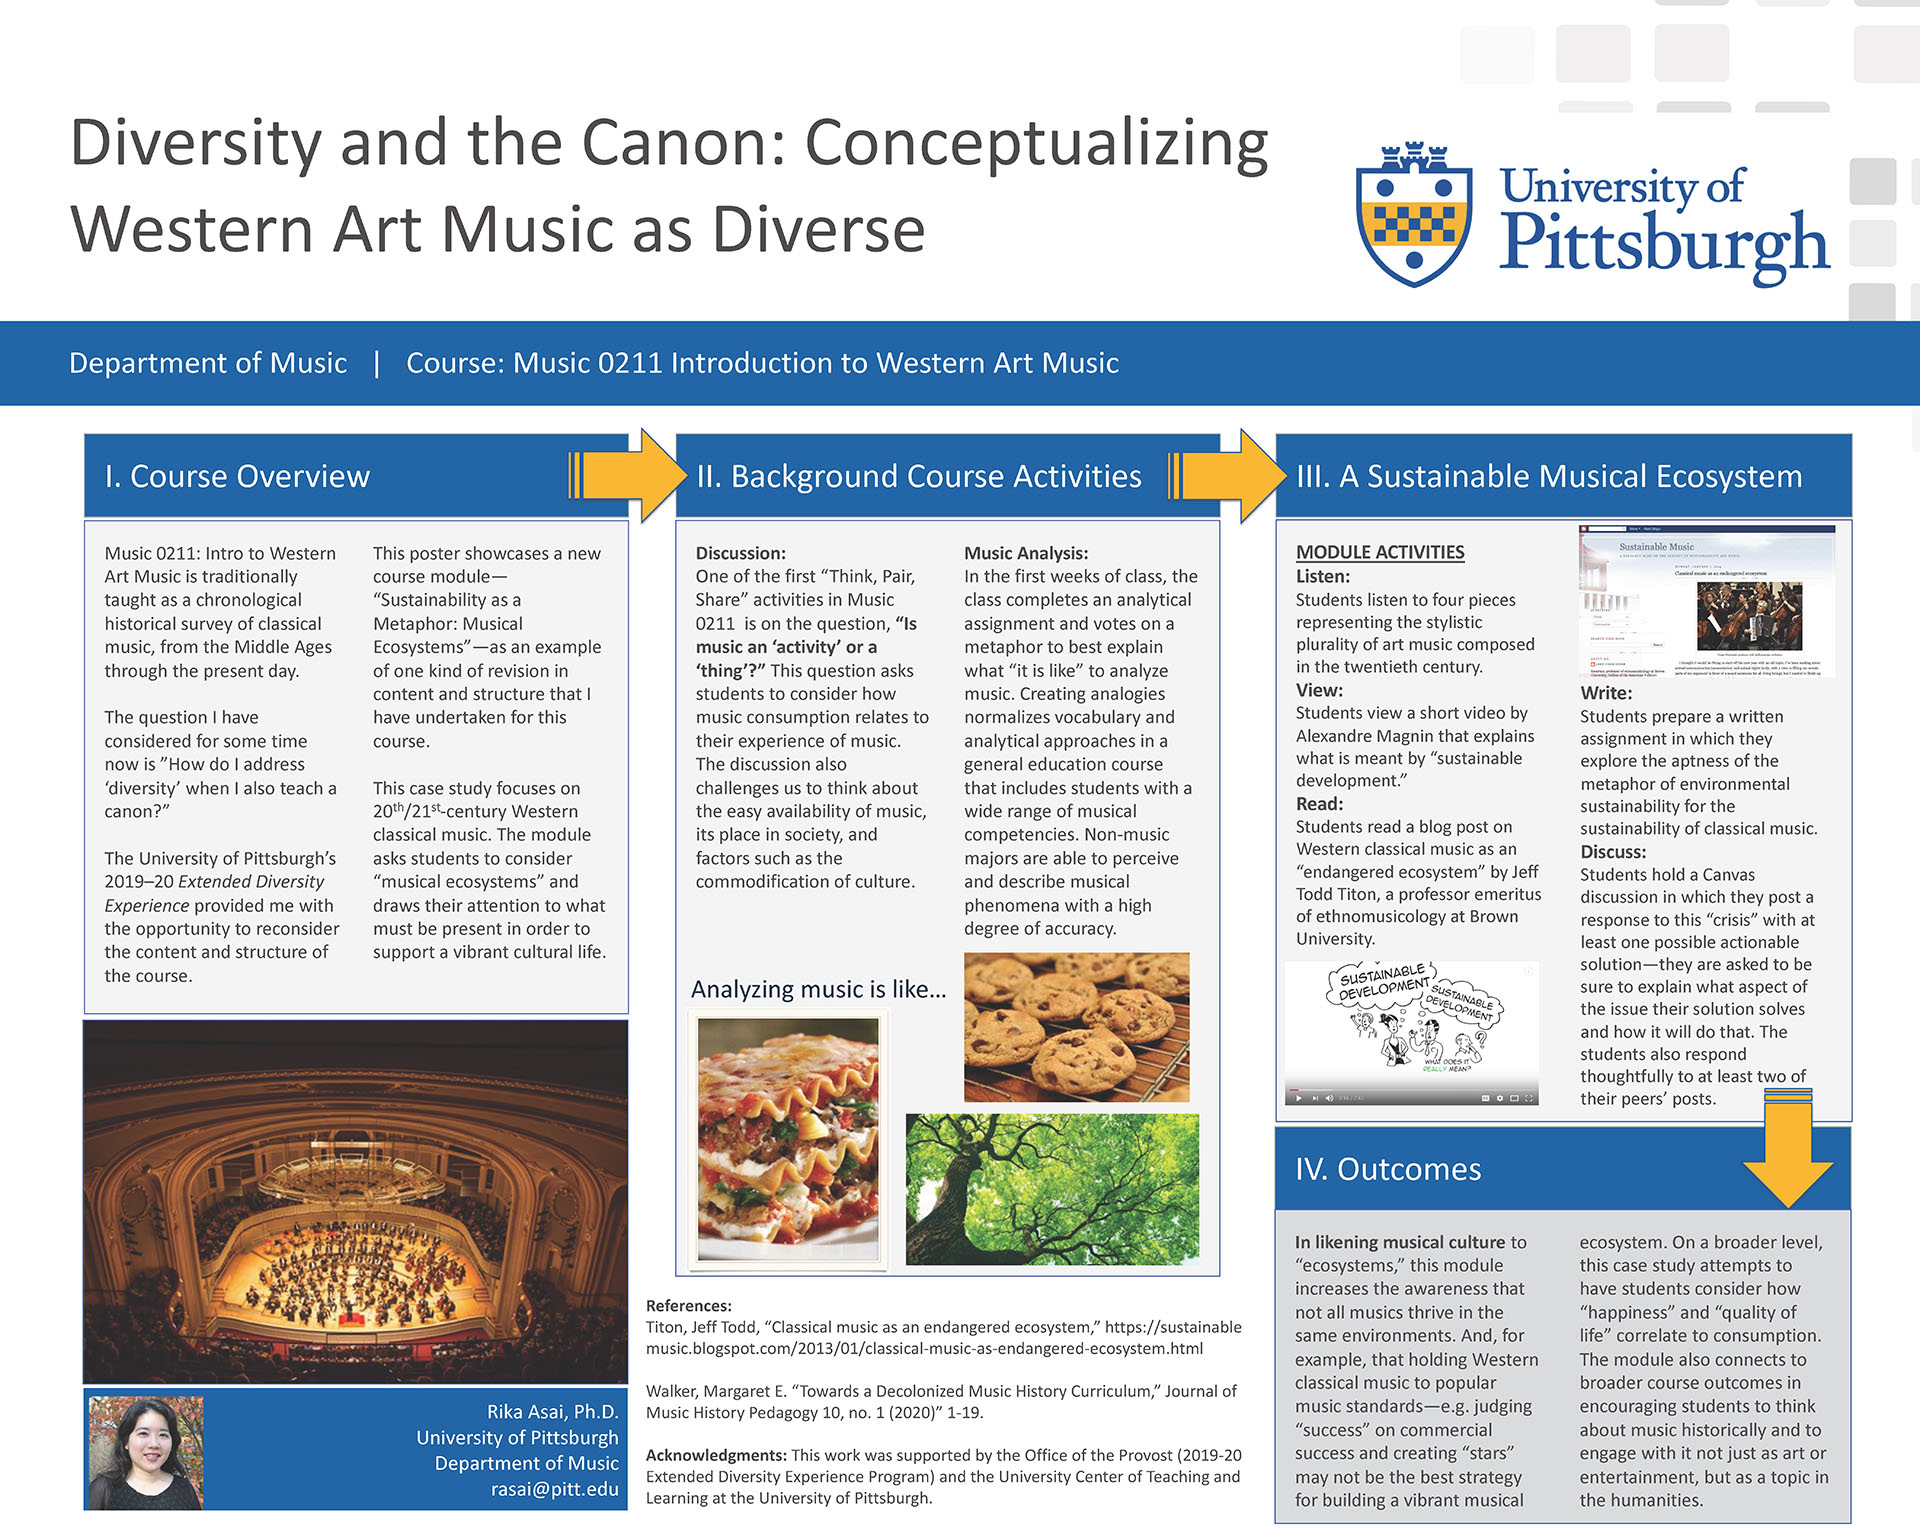 Rika Asai, PhD - Extended Diversity Experience 2020 Poster - Diversity and the Canon: Conceptualizing Western Art Music as Diverse